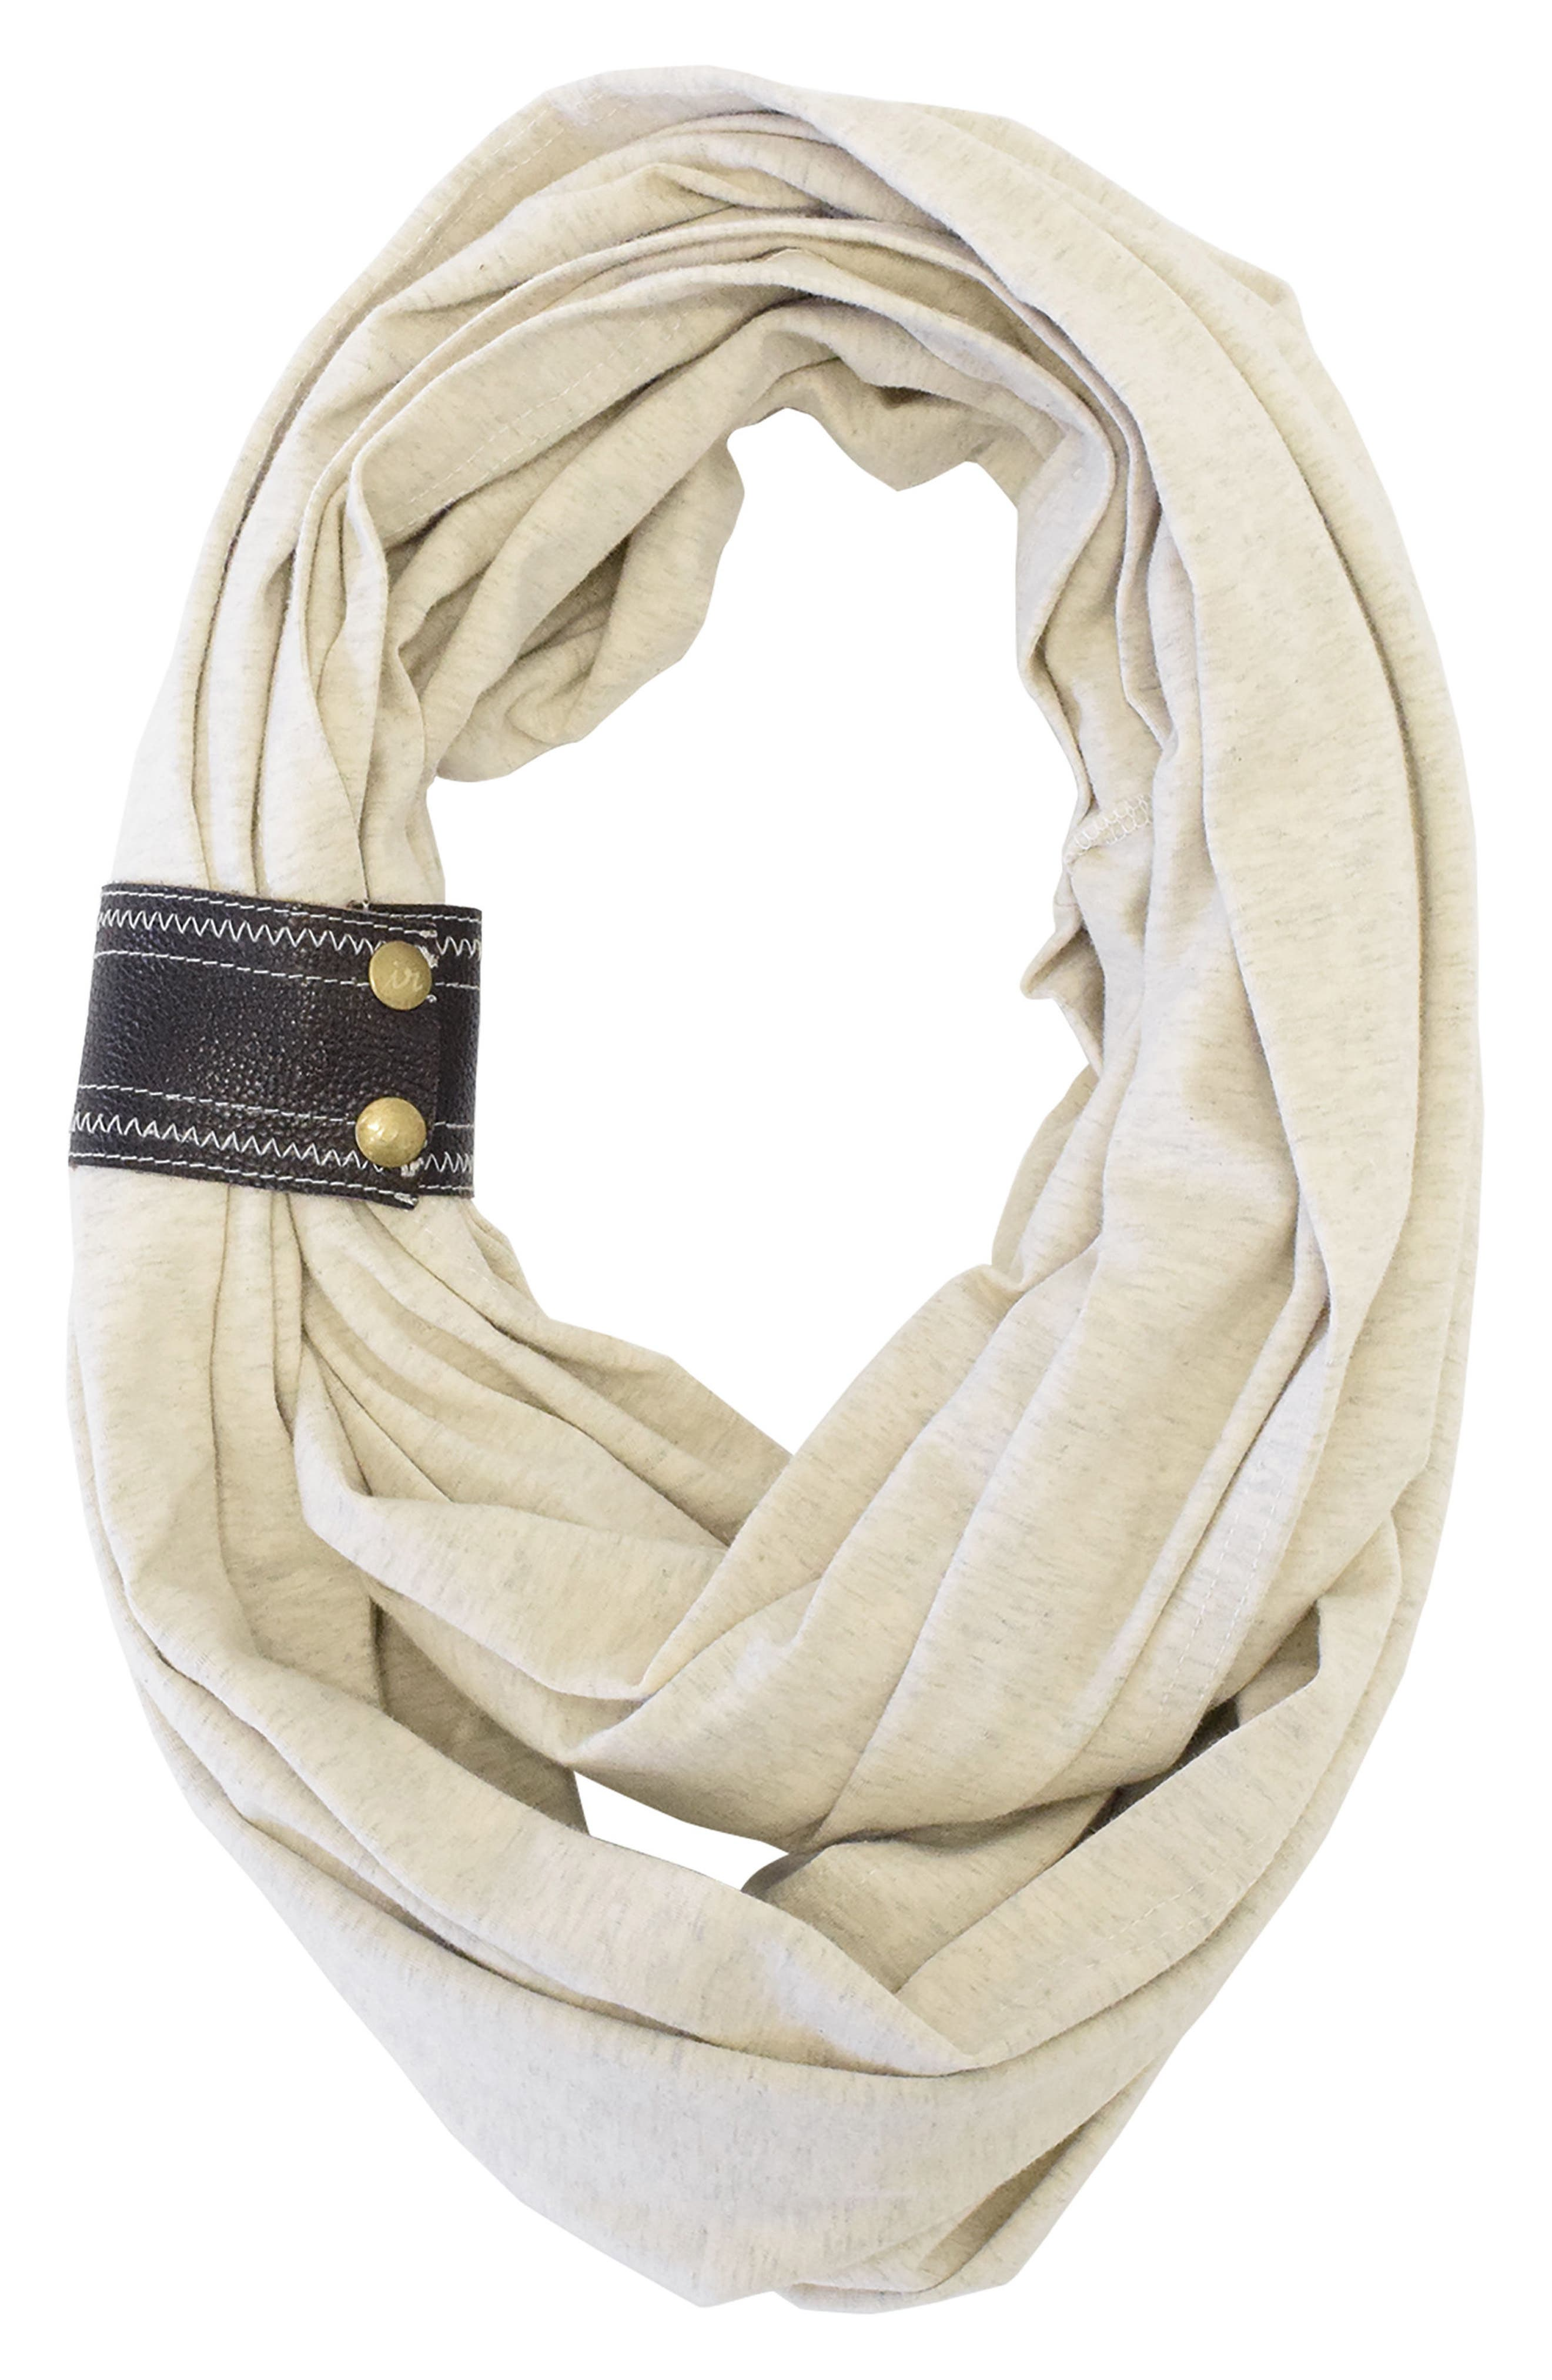 Itzy Ritzy Infinity Nursing Scarf with Leather Cuff